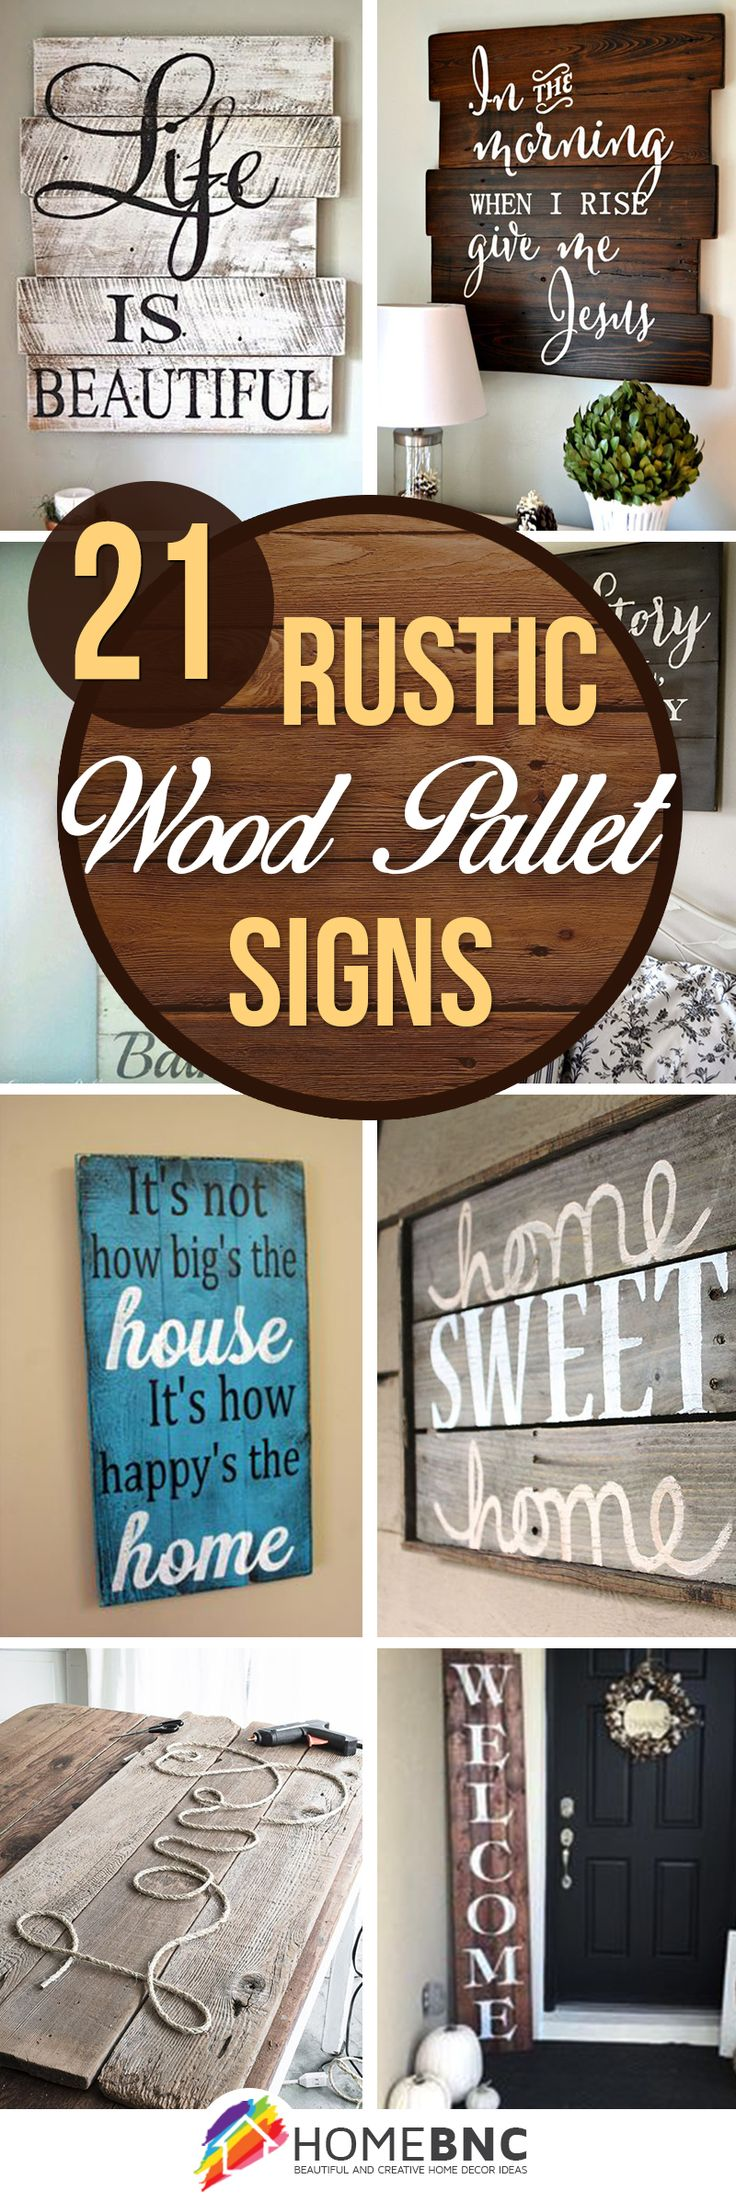 Wood signs are a hot new decorating trend and it's easy to see why they've become so popular. Find the best ideas and start